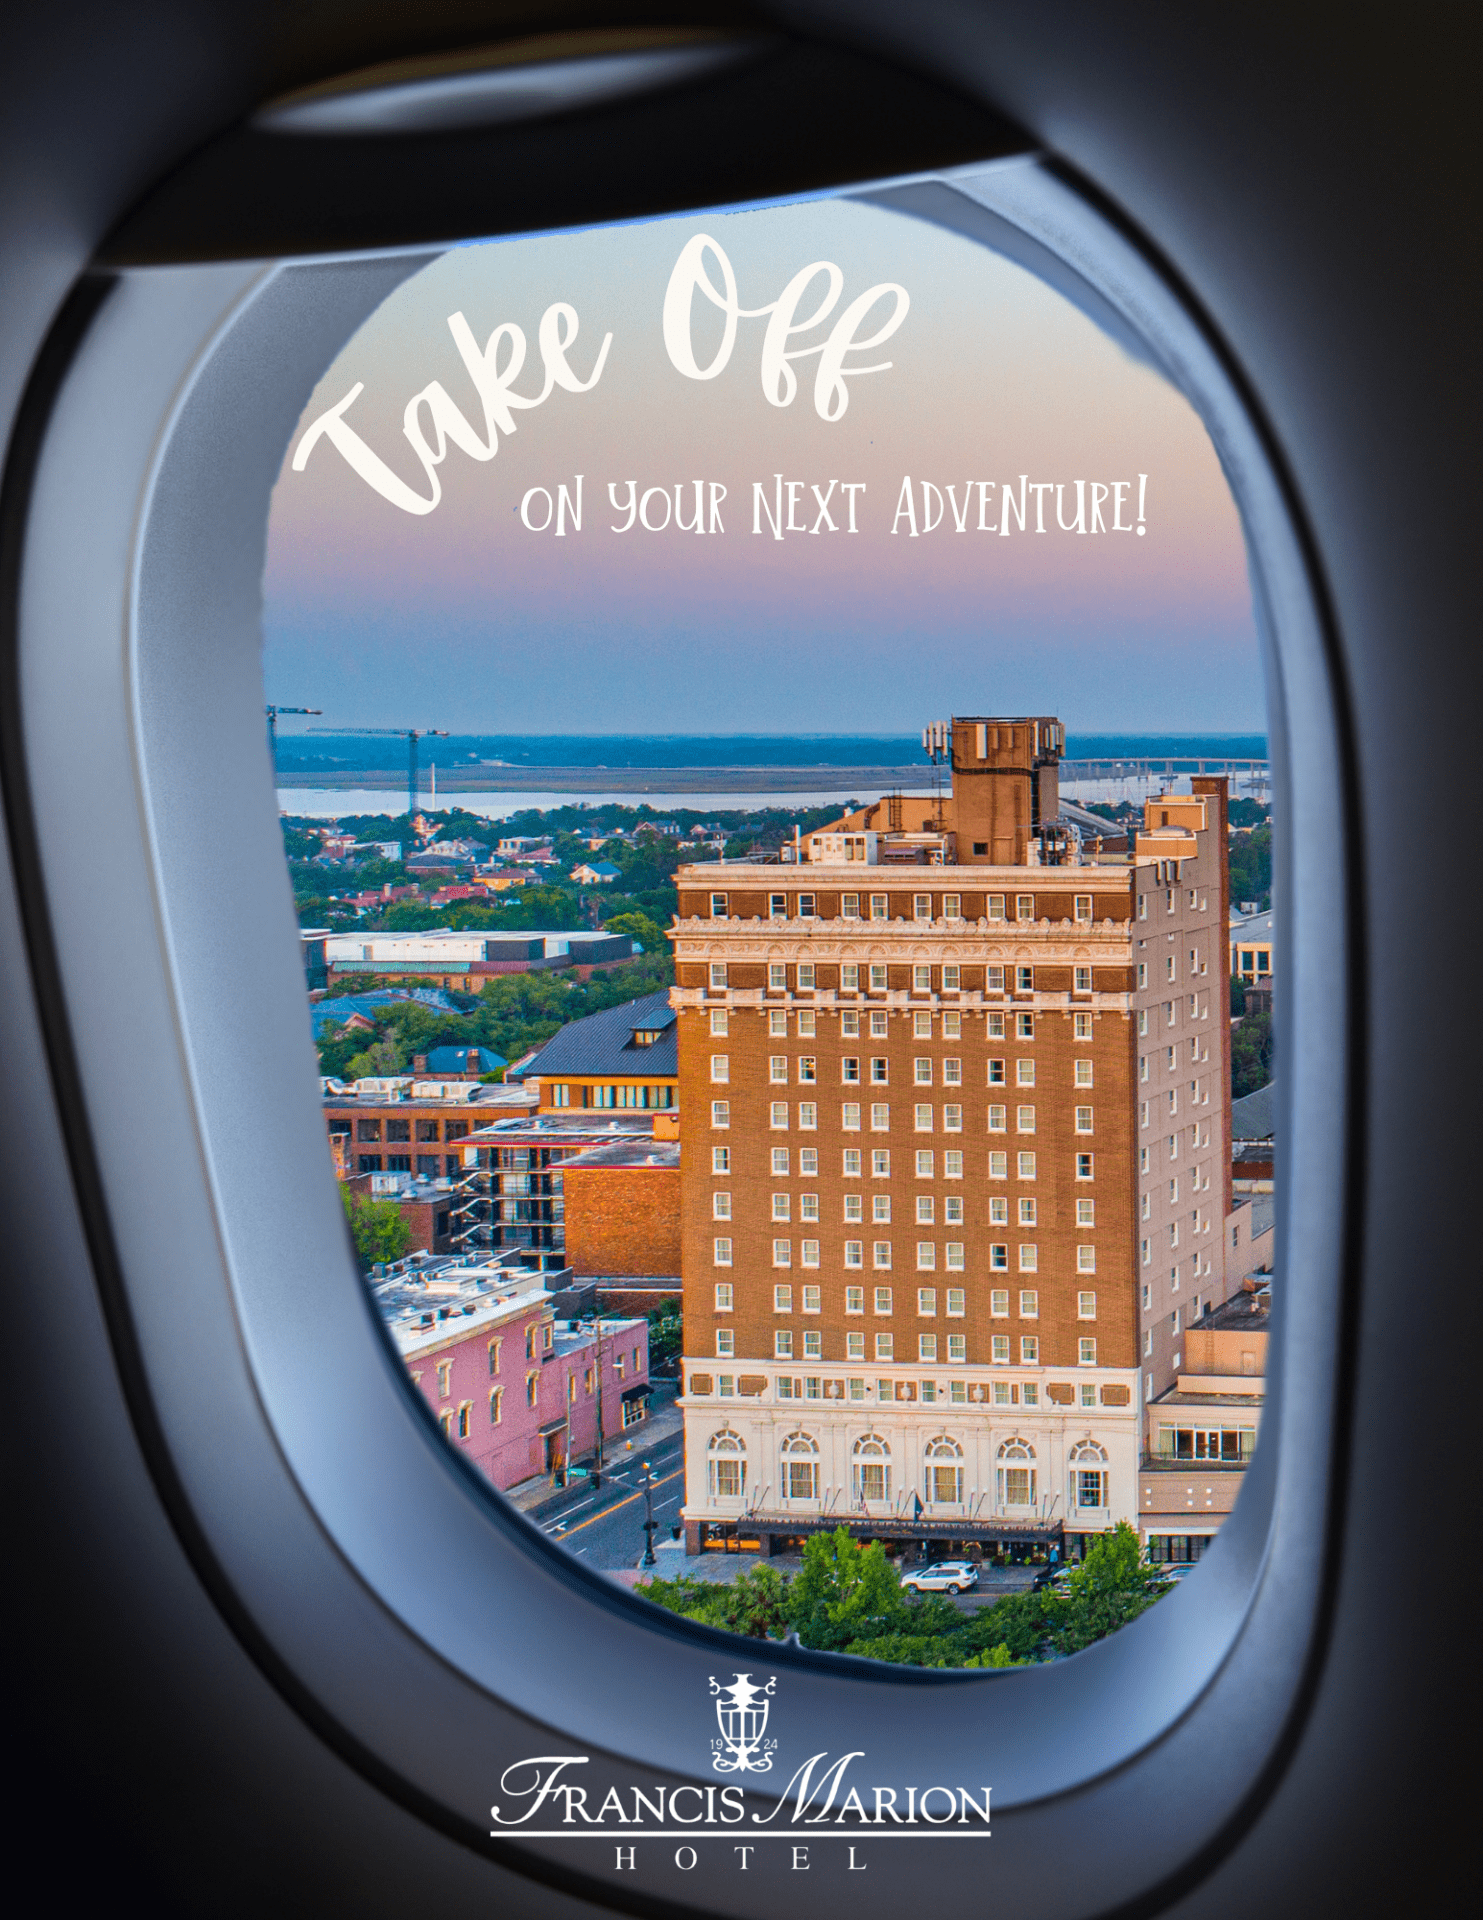 A plane window takes up the full image and outisde of the window is the city of charleston, and the Francis Marion Hotel is the main focus. The sun is setting so the building looks more orange and the sky is fading into blues and purples. The text across the image says Take off on your next adventure.